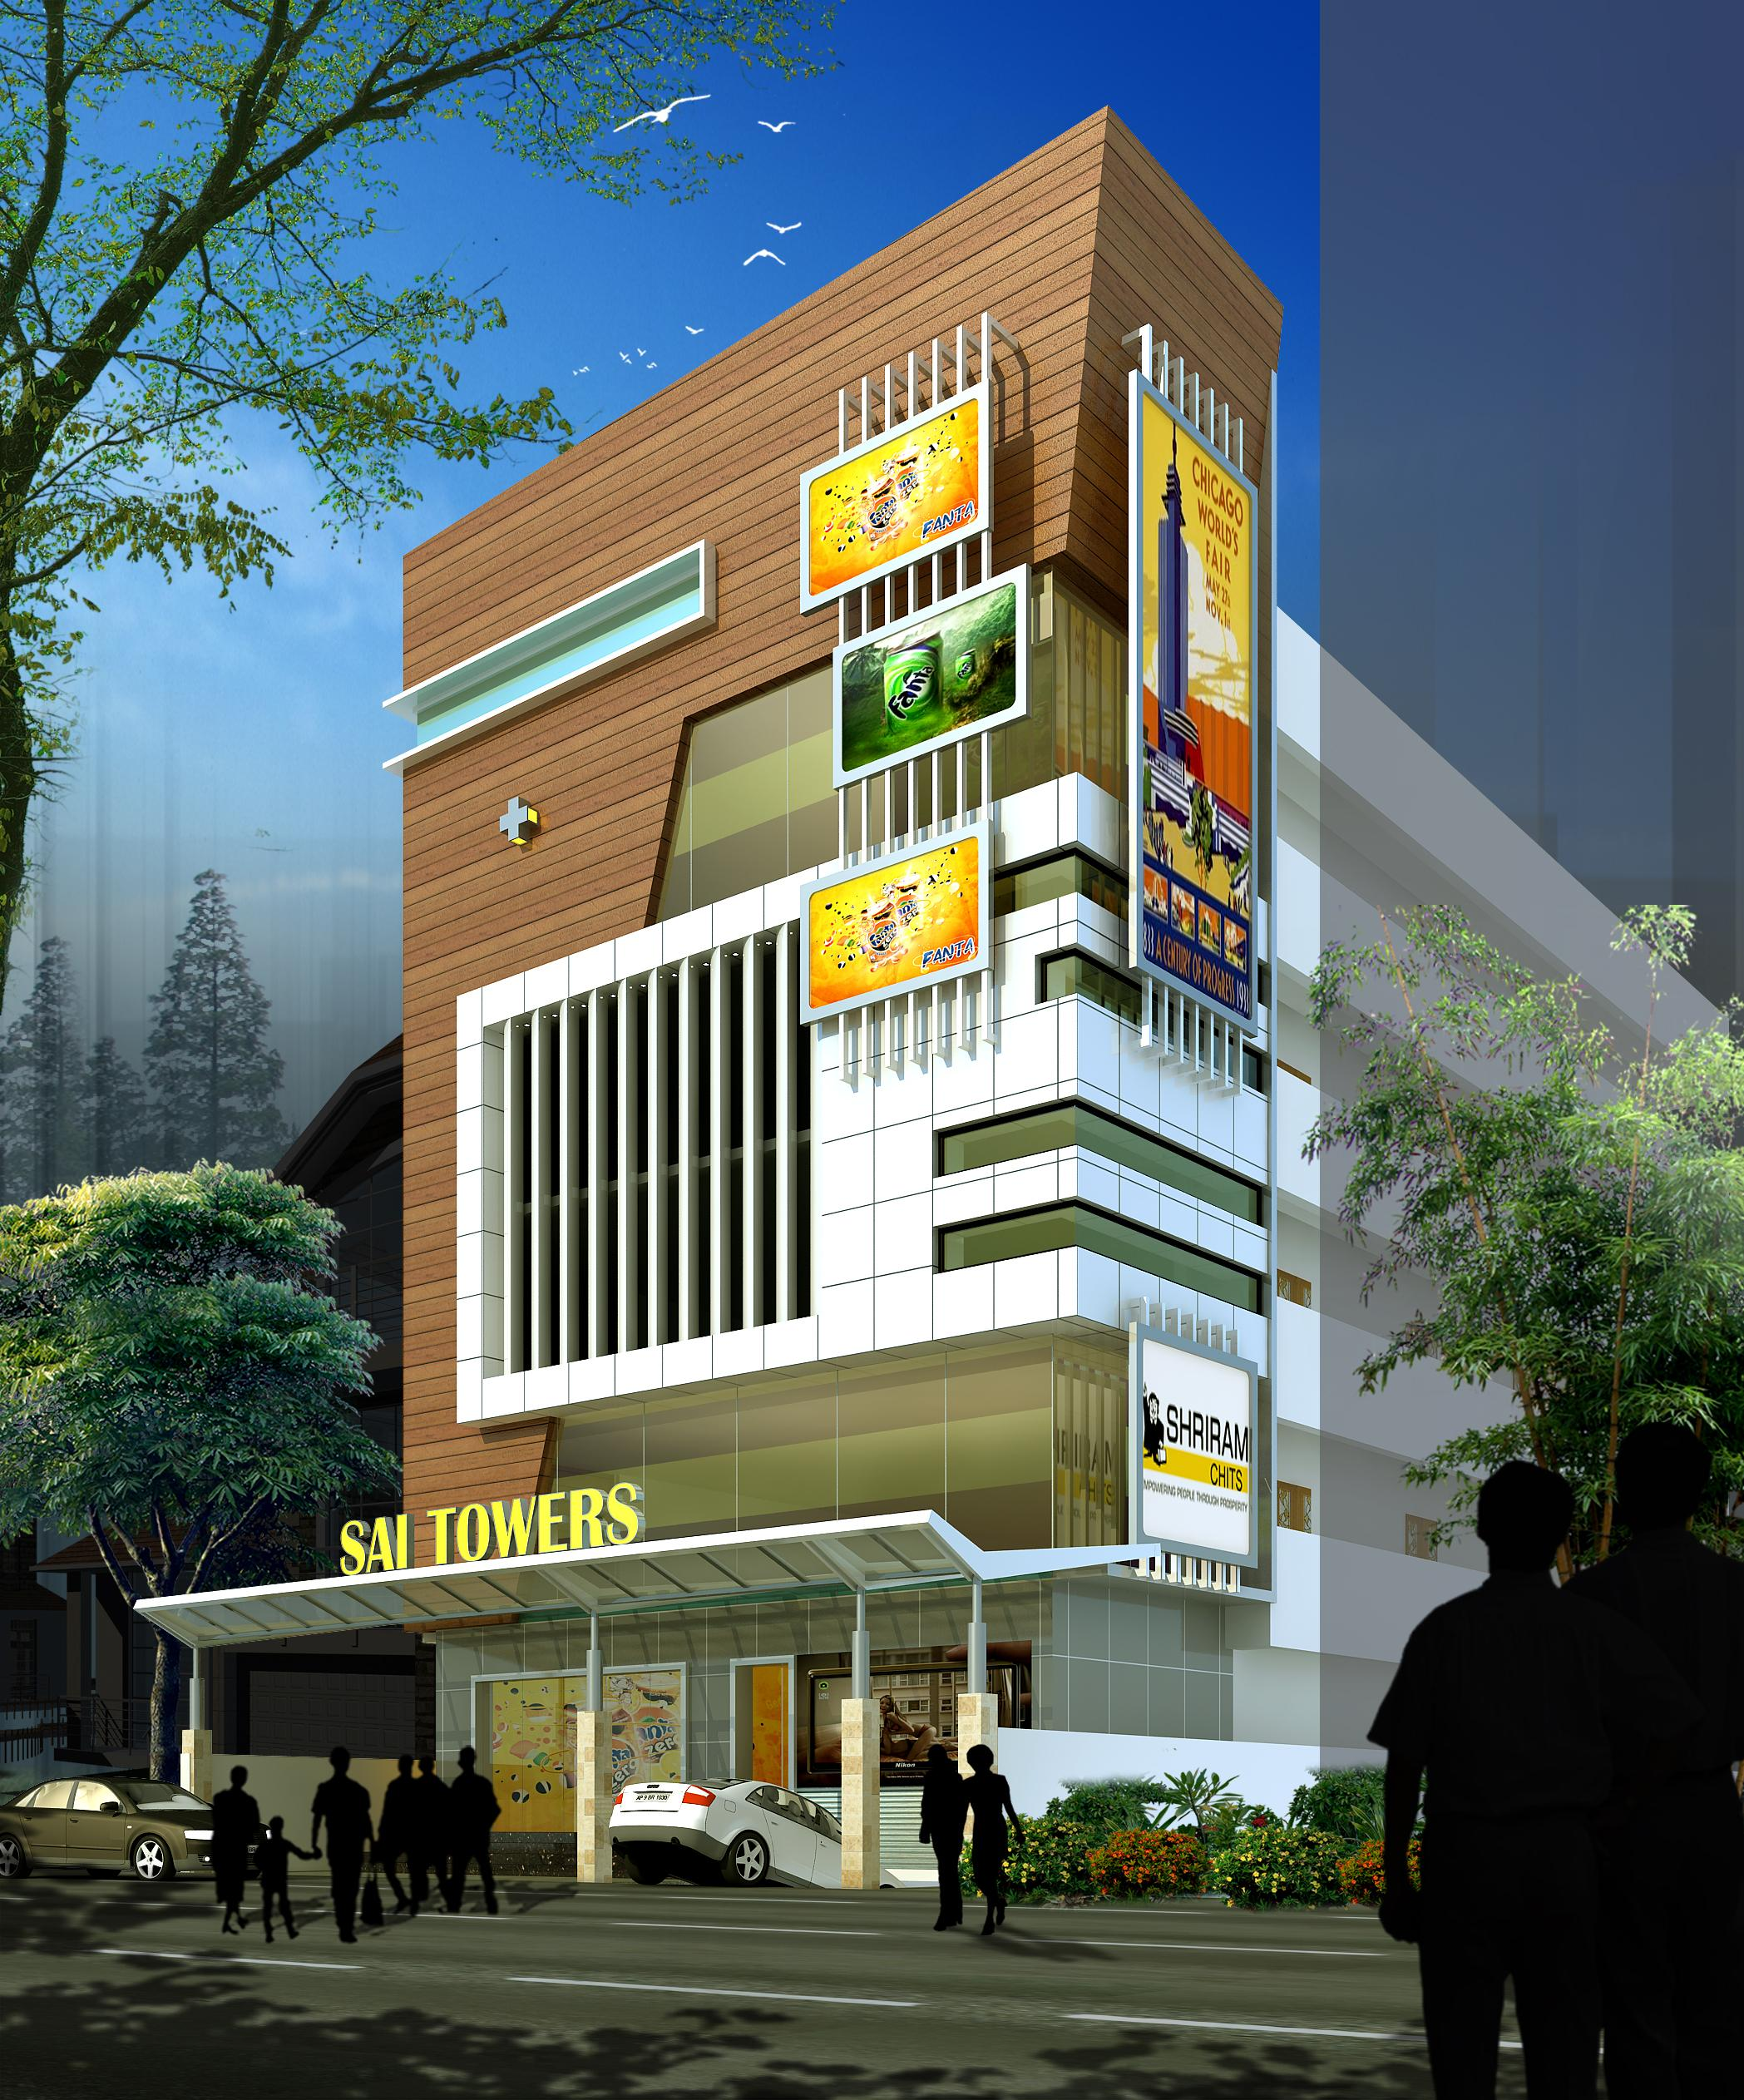 ar-concepts-jitendar-rao-commercial-elevation-b